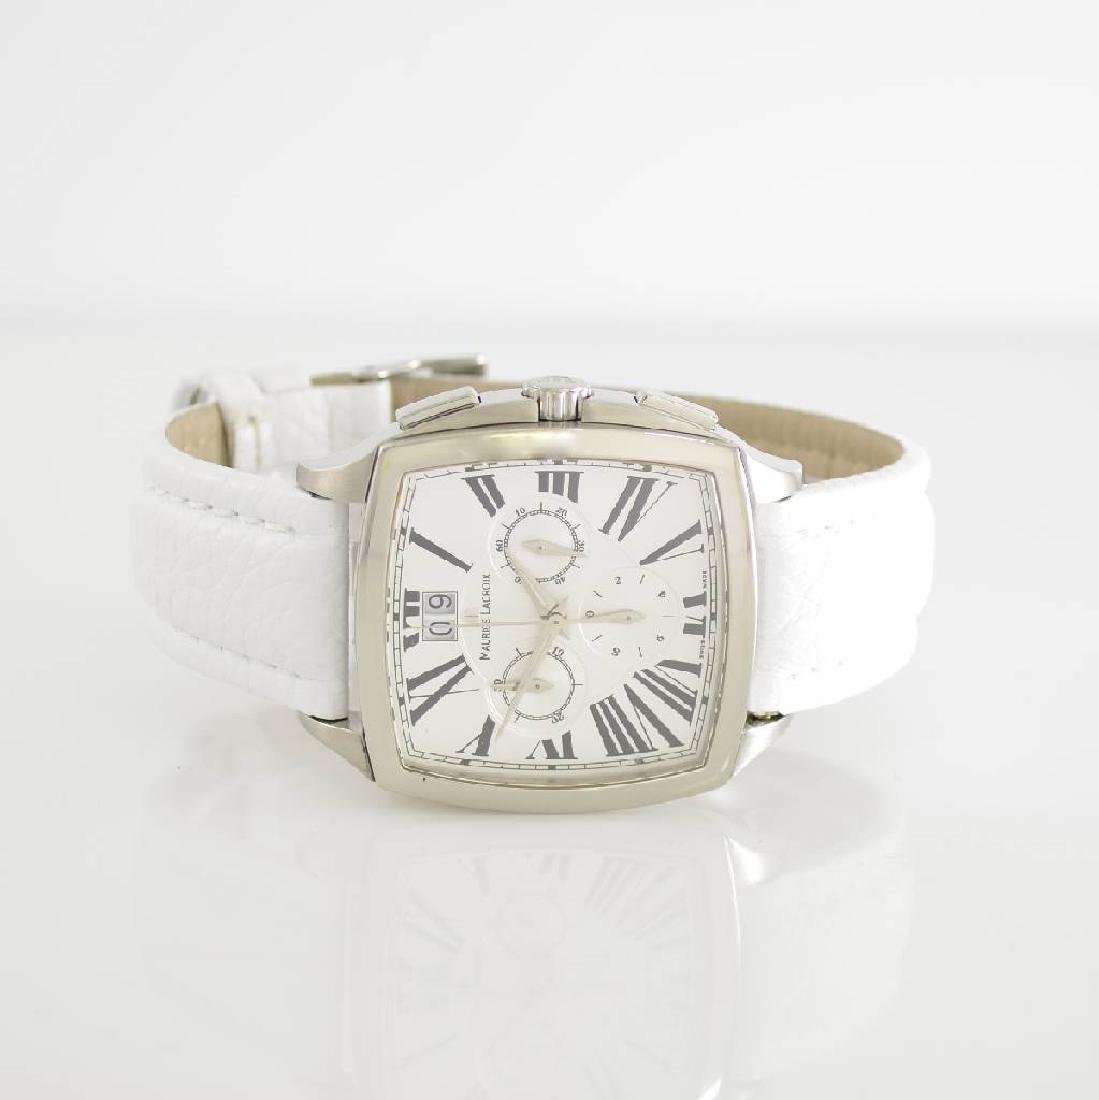 MAURICE LACROIX chronograph Miros Coussin